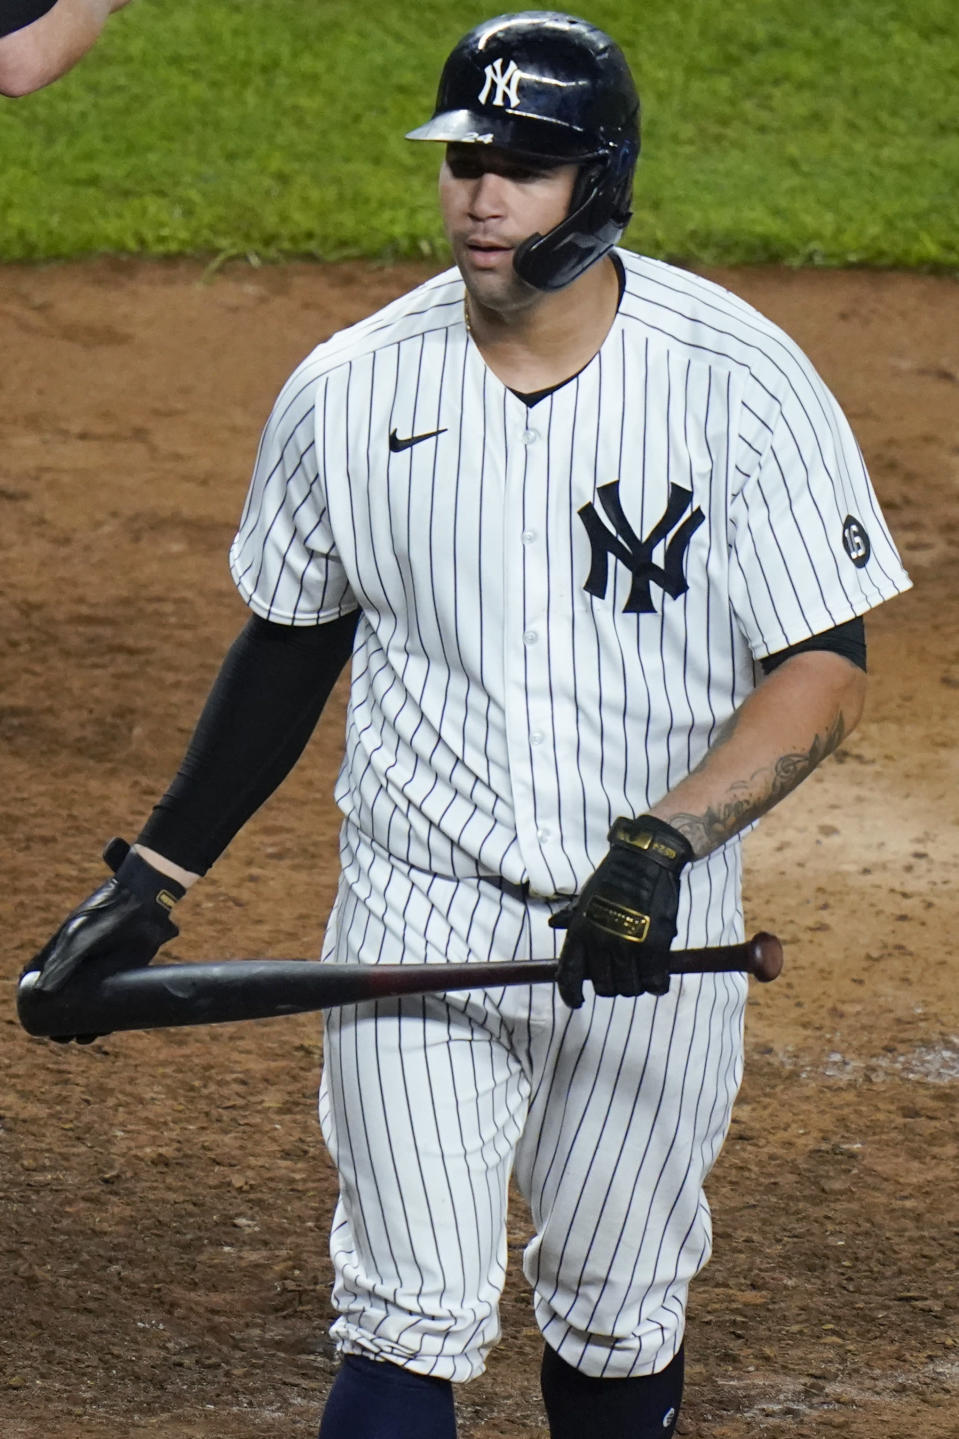 New York Yankees' Gary Sanchez reacts after striking out to end a baseball game against the Boston Red Sox Friday, June 4, 2021, in New York. (AP Photo/Frank Franklin II)